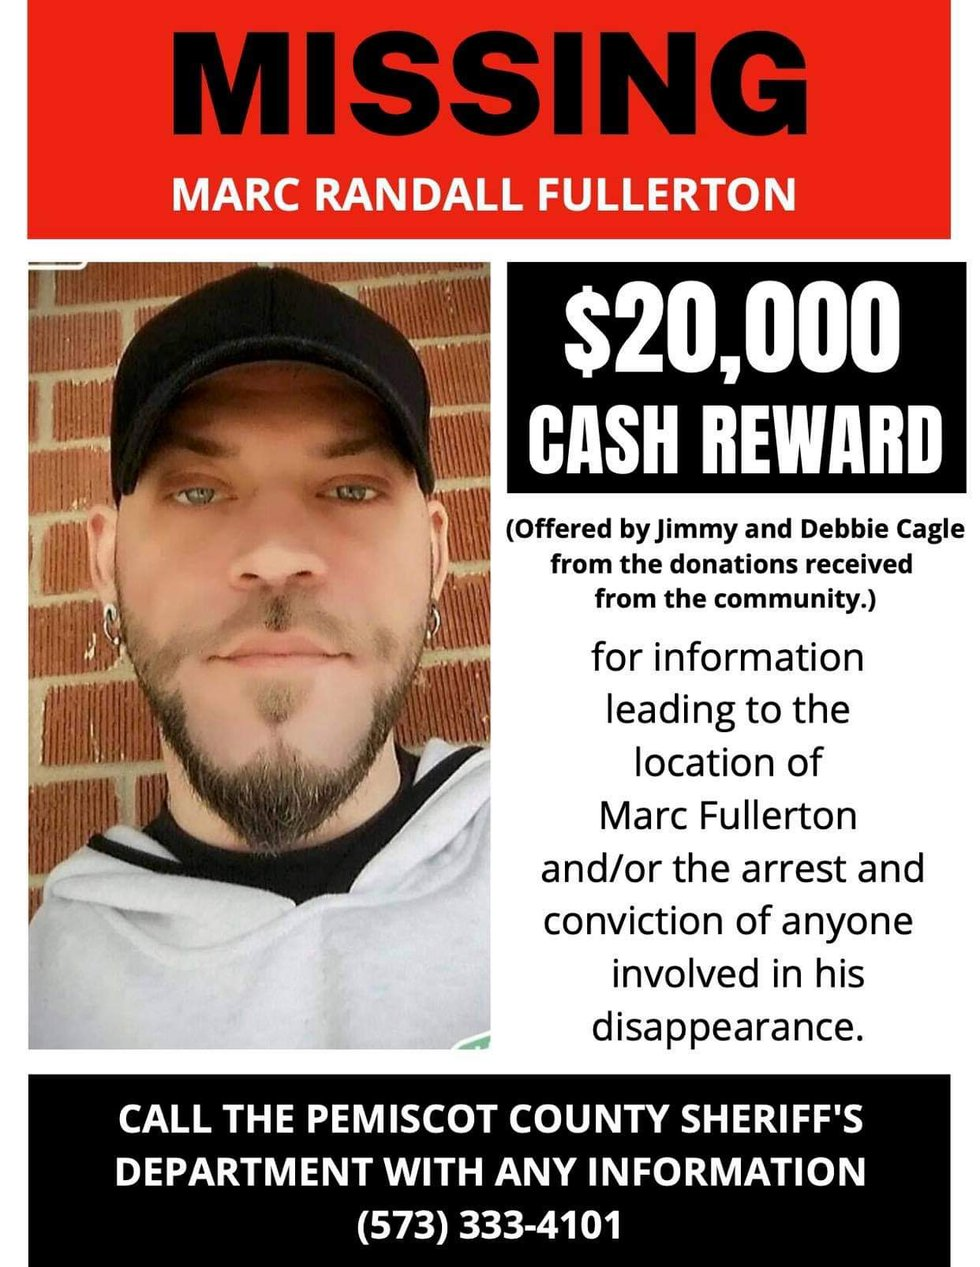 The family of Marc Fullerton has now raised the reward to $20,000.